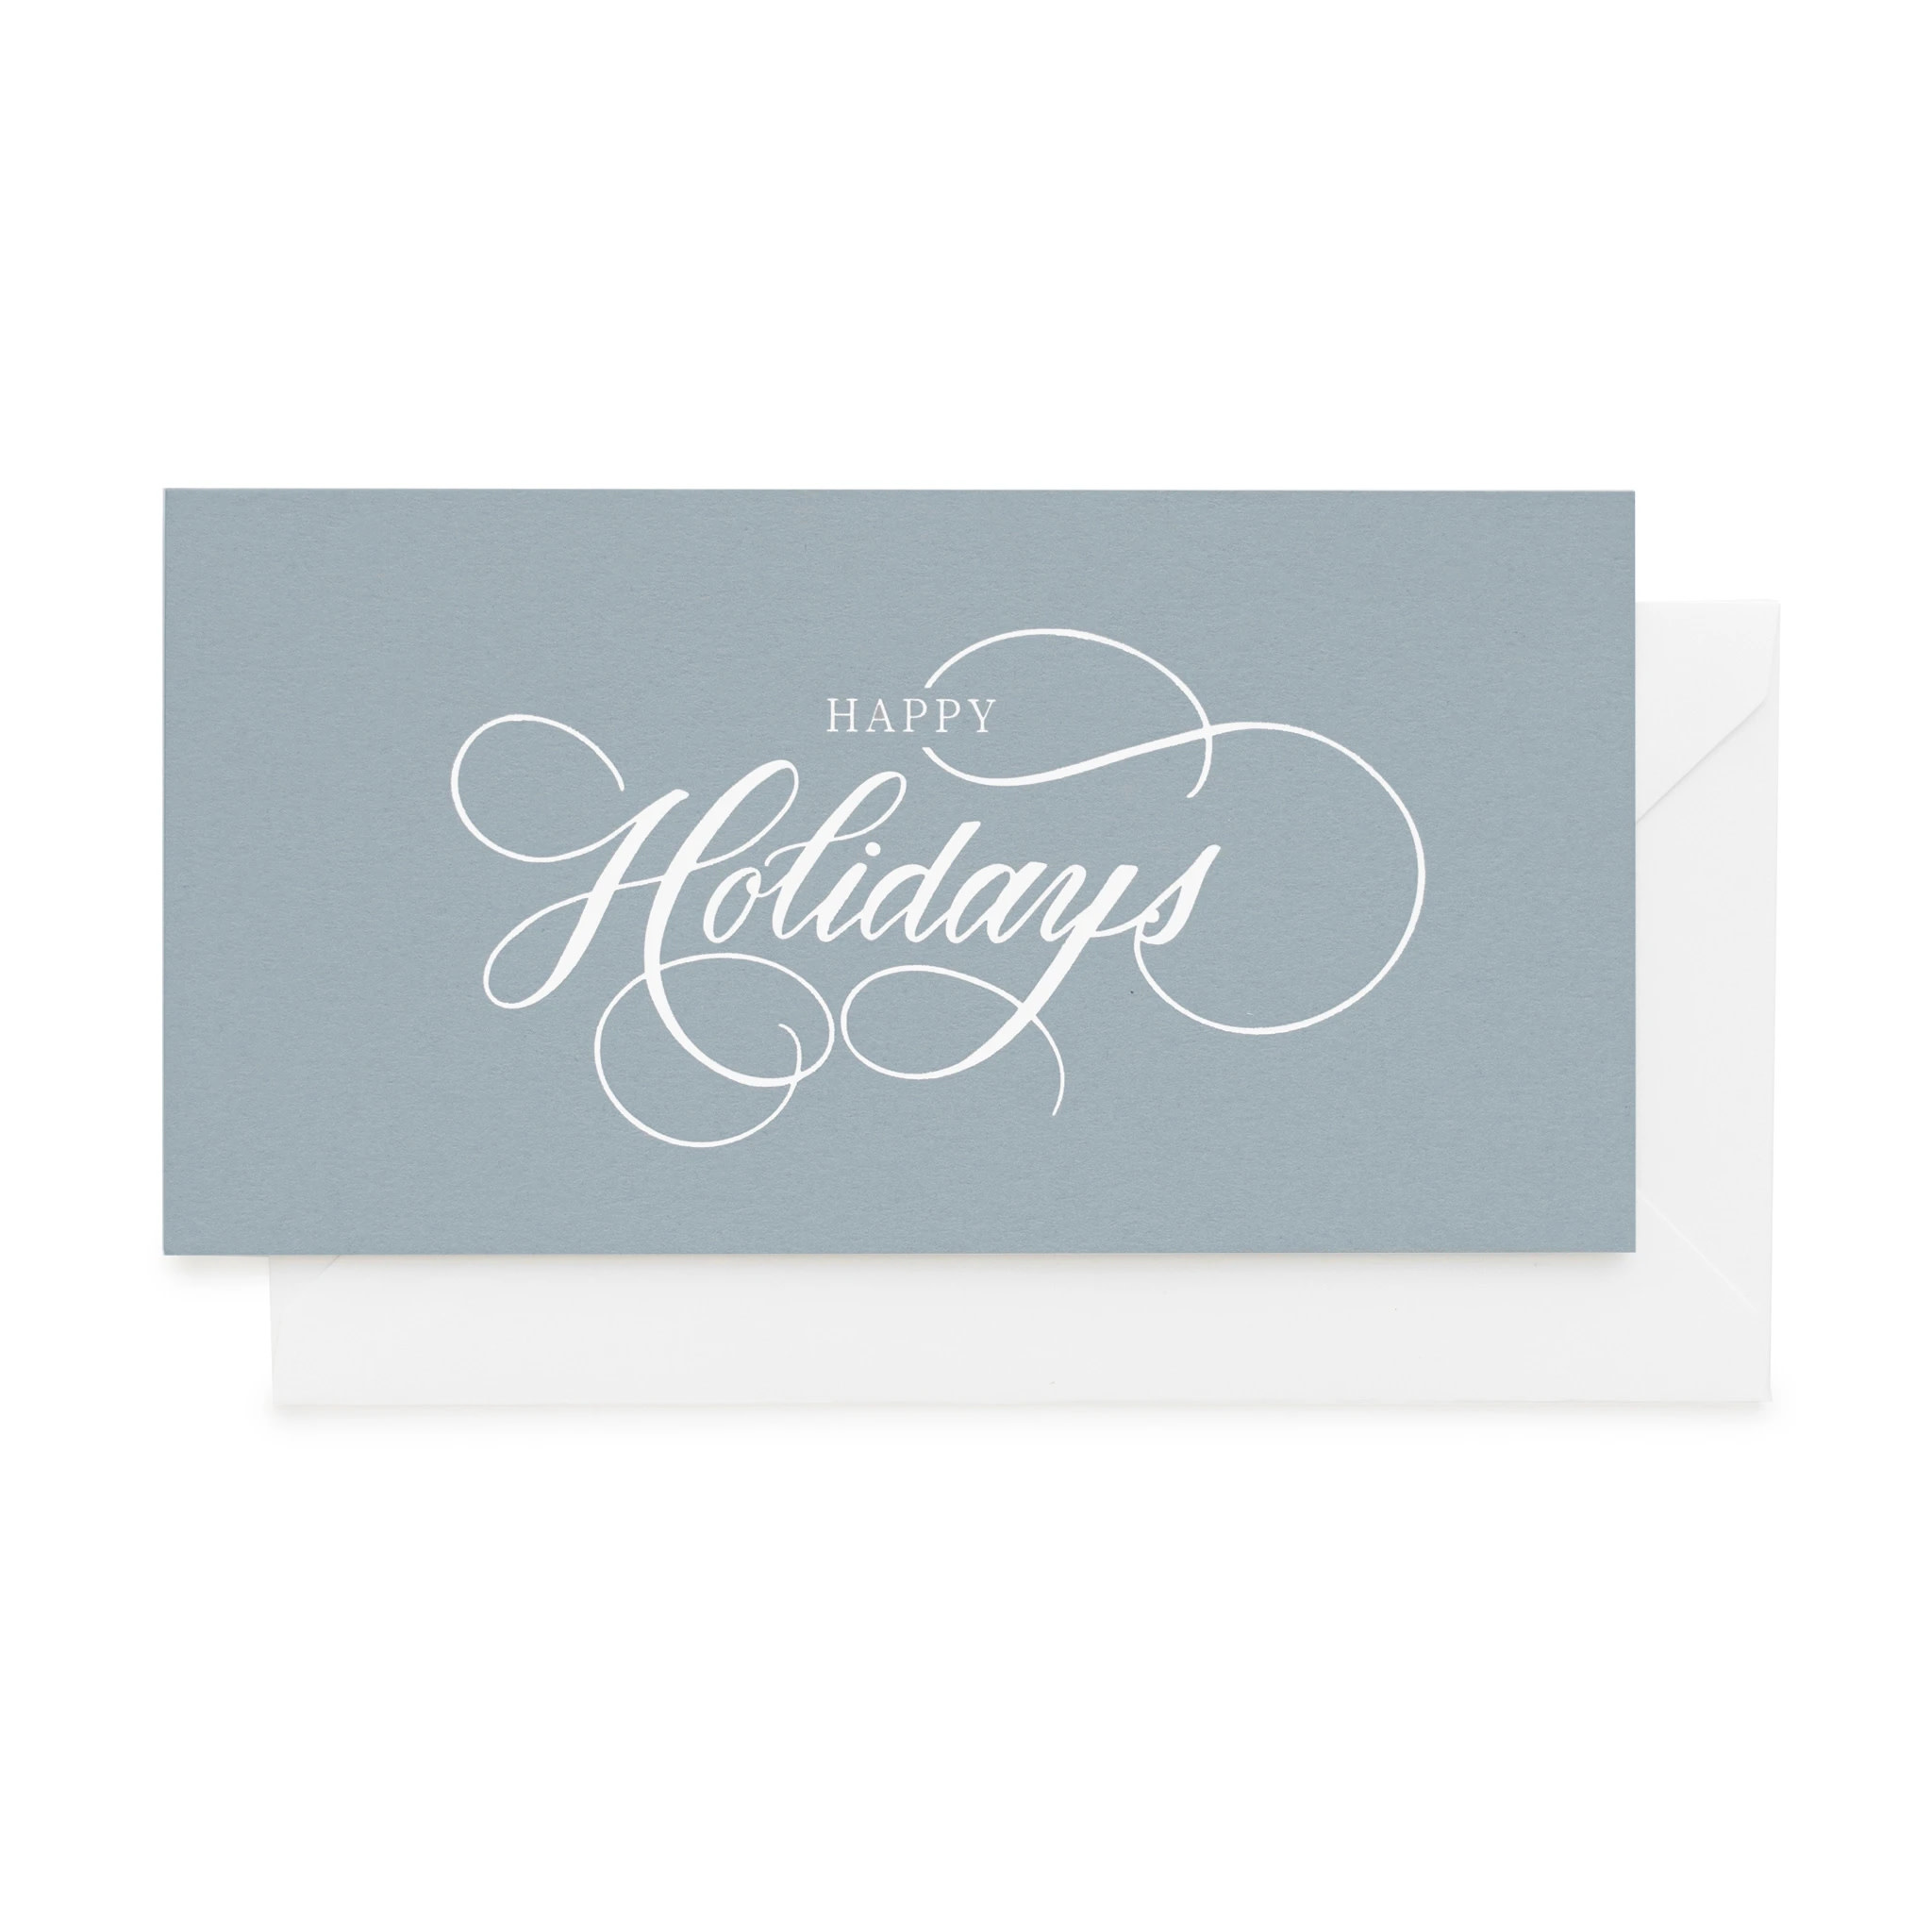 Sugar Paper - SUG Sugar Paper Happy Holidays Blue Card